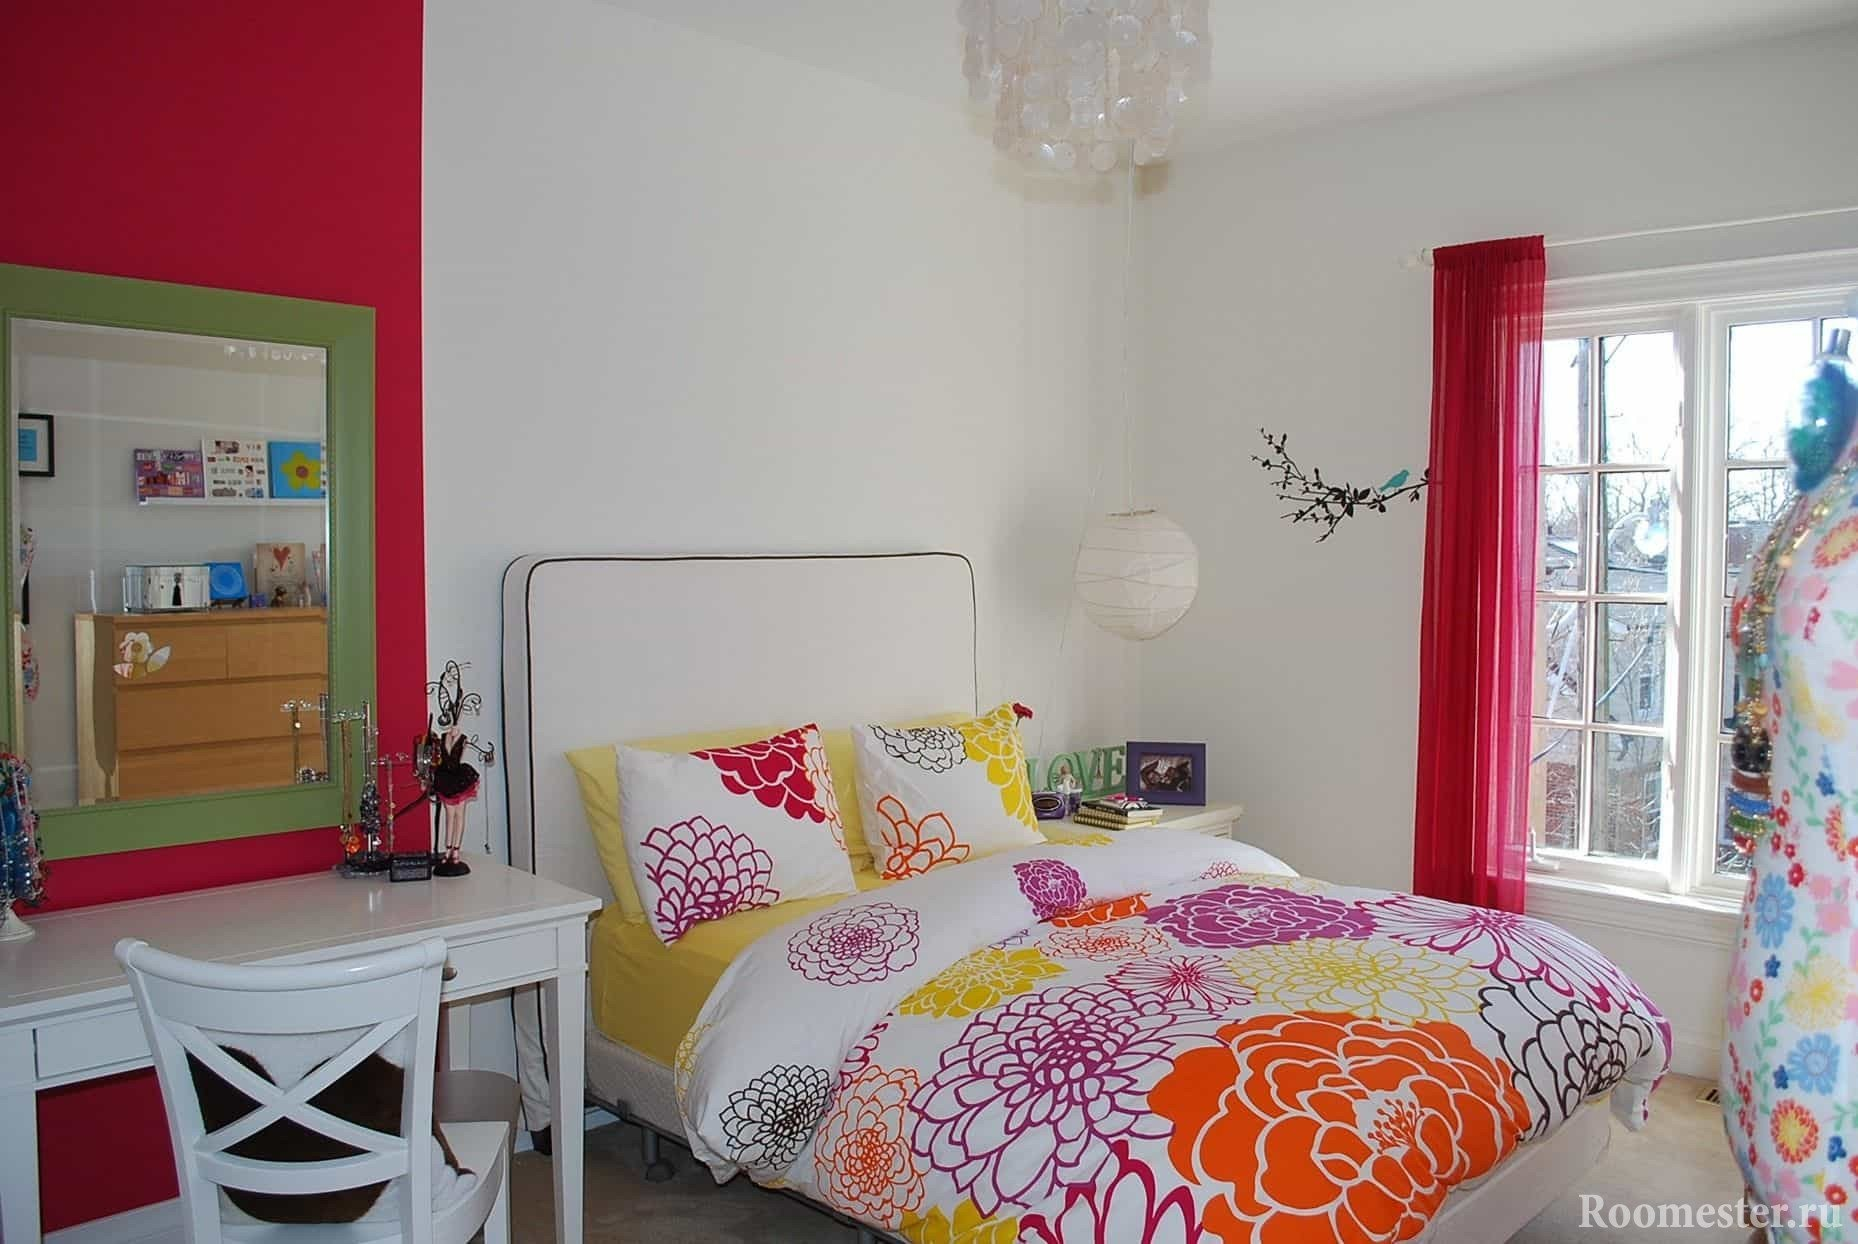 In the white room of a teenage girl - colored bedding and decorative elements.